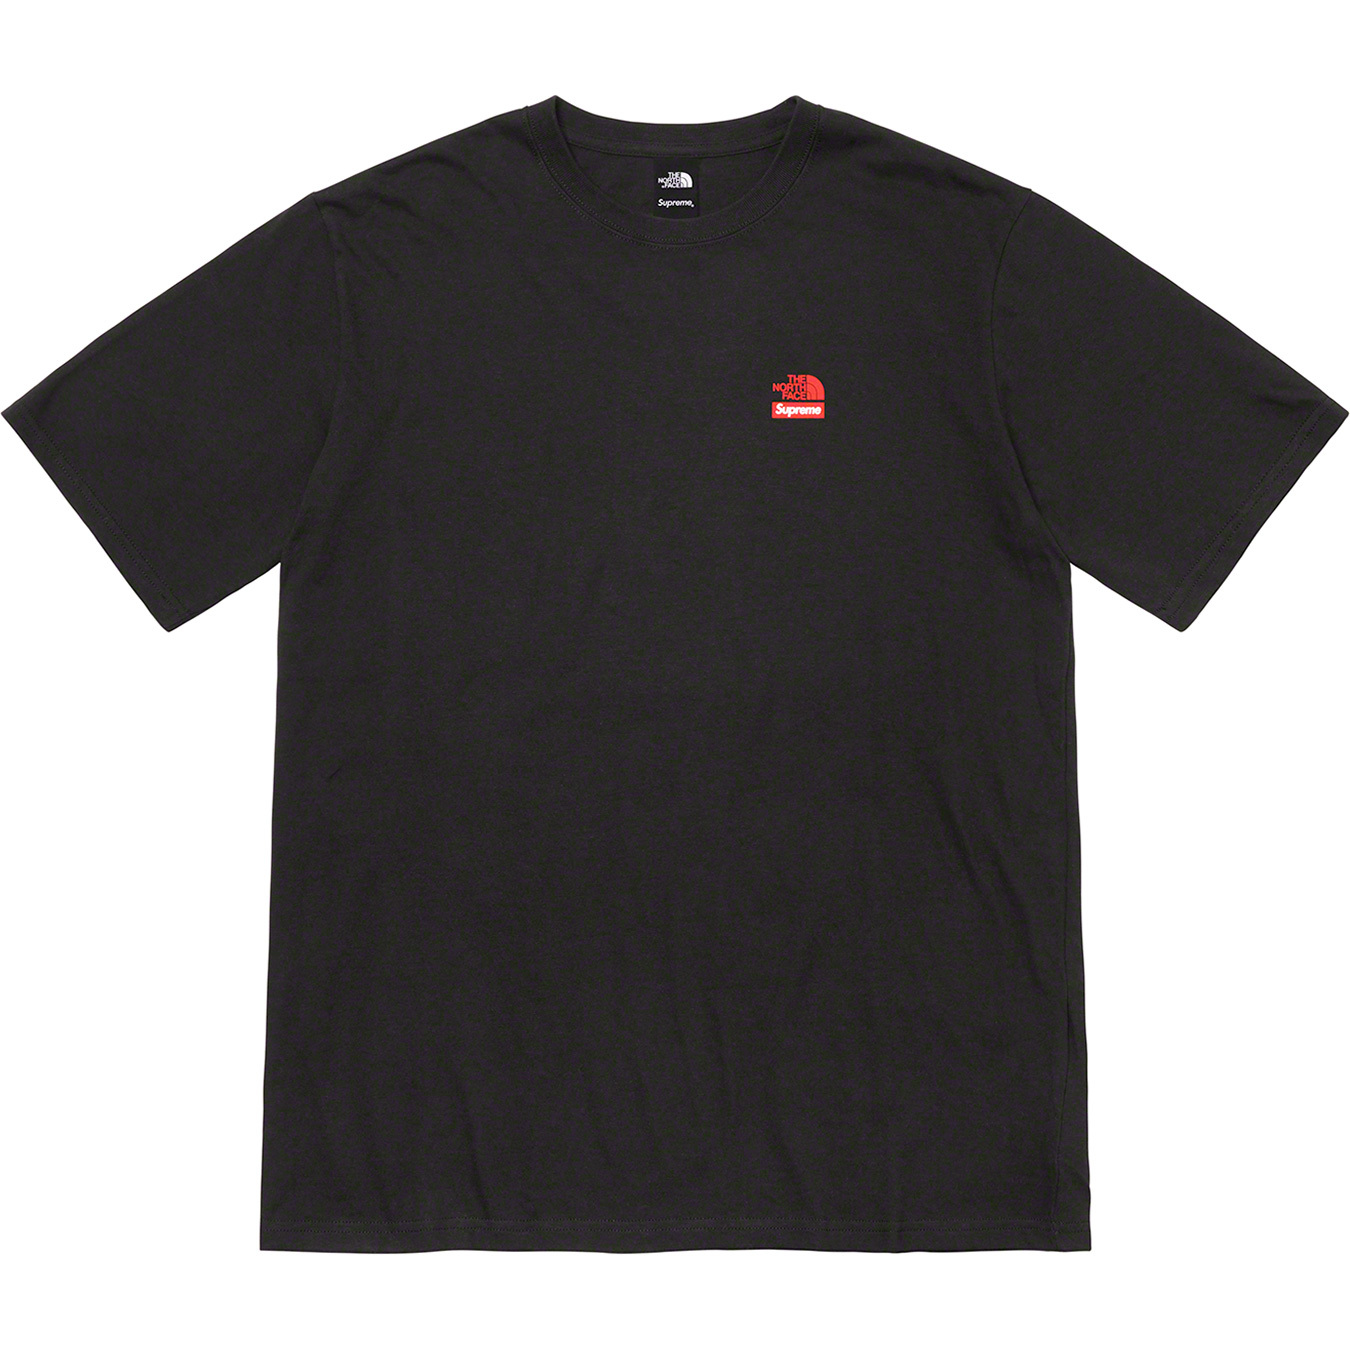 supreme-the-north-face-19aw-19fw-release-20191102-week10-statue-of-liberty-tee